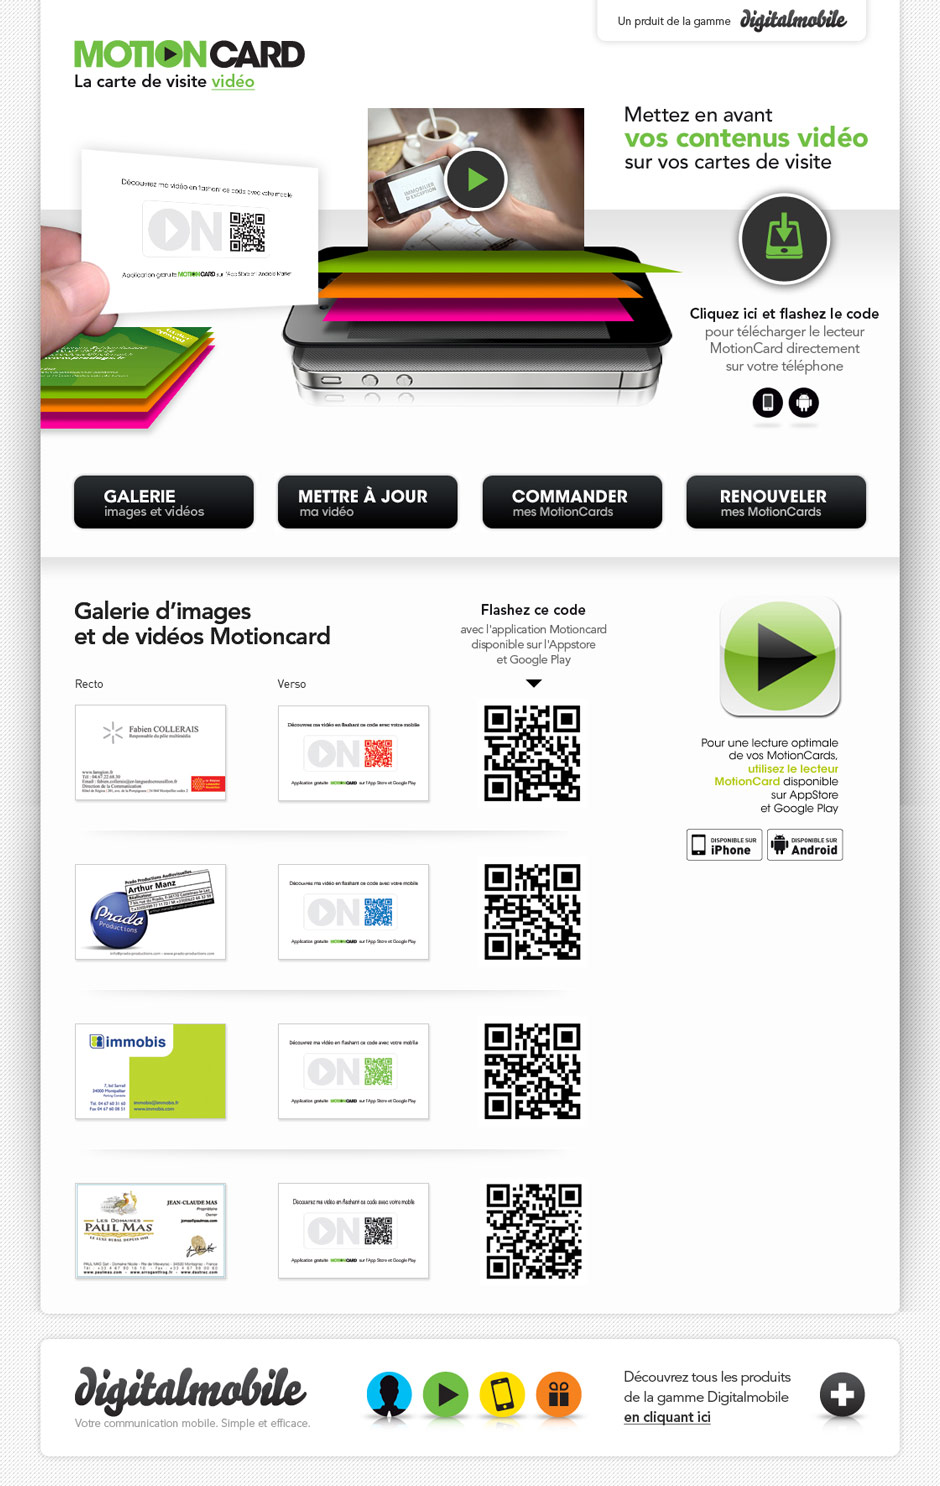 graphiste-montpellier-creation-exaprint-motioncard-agence-communication-montpellier-caconcept-alexis-cretin-5